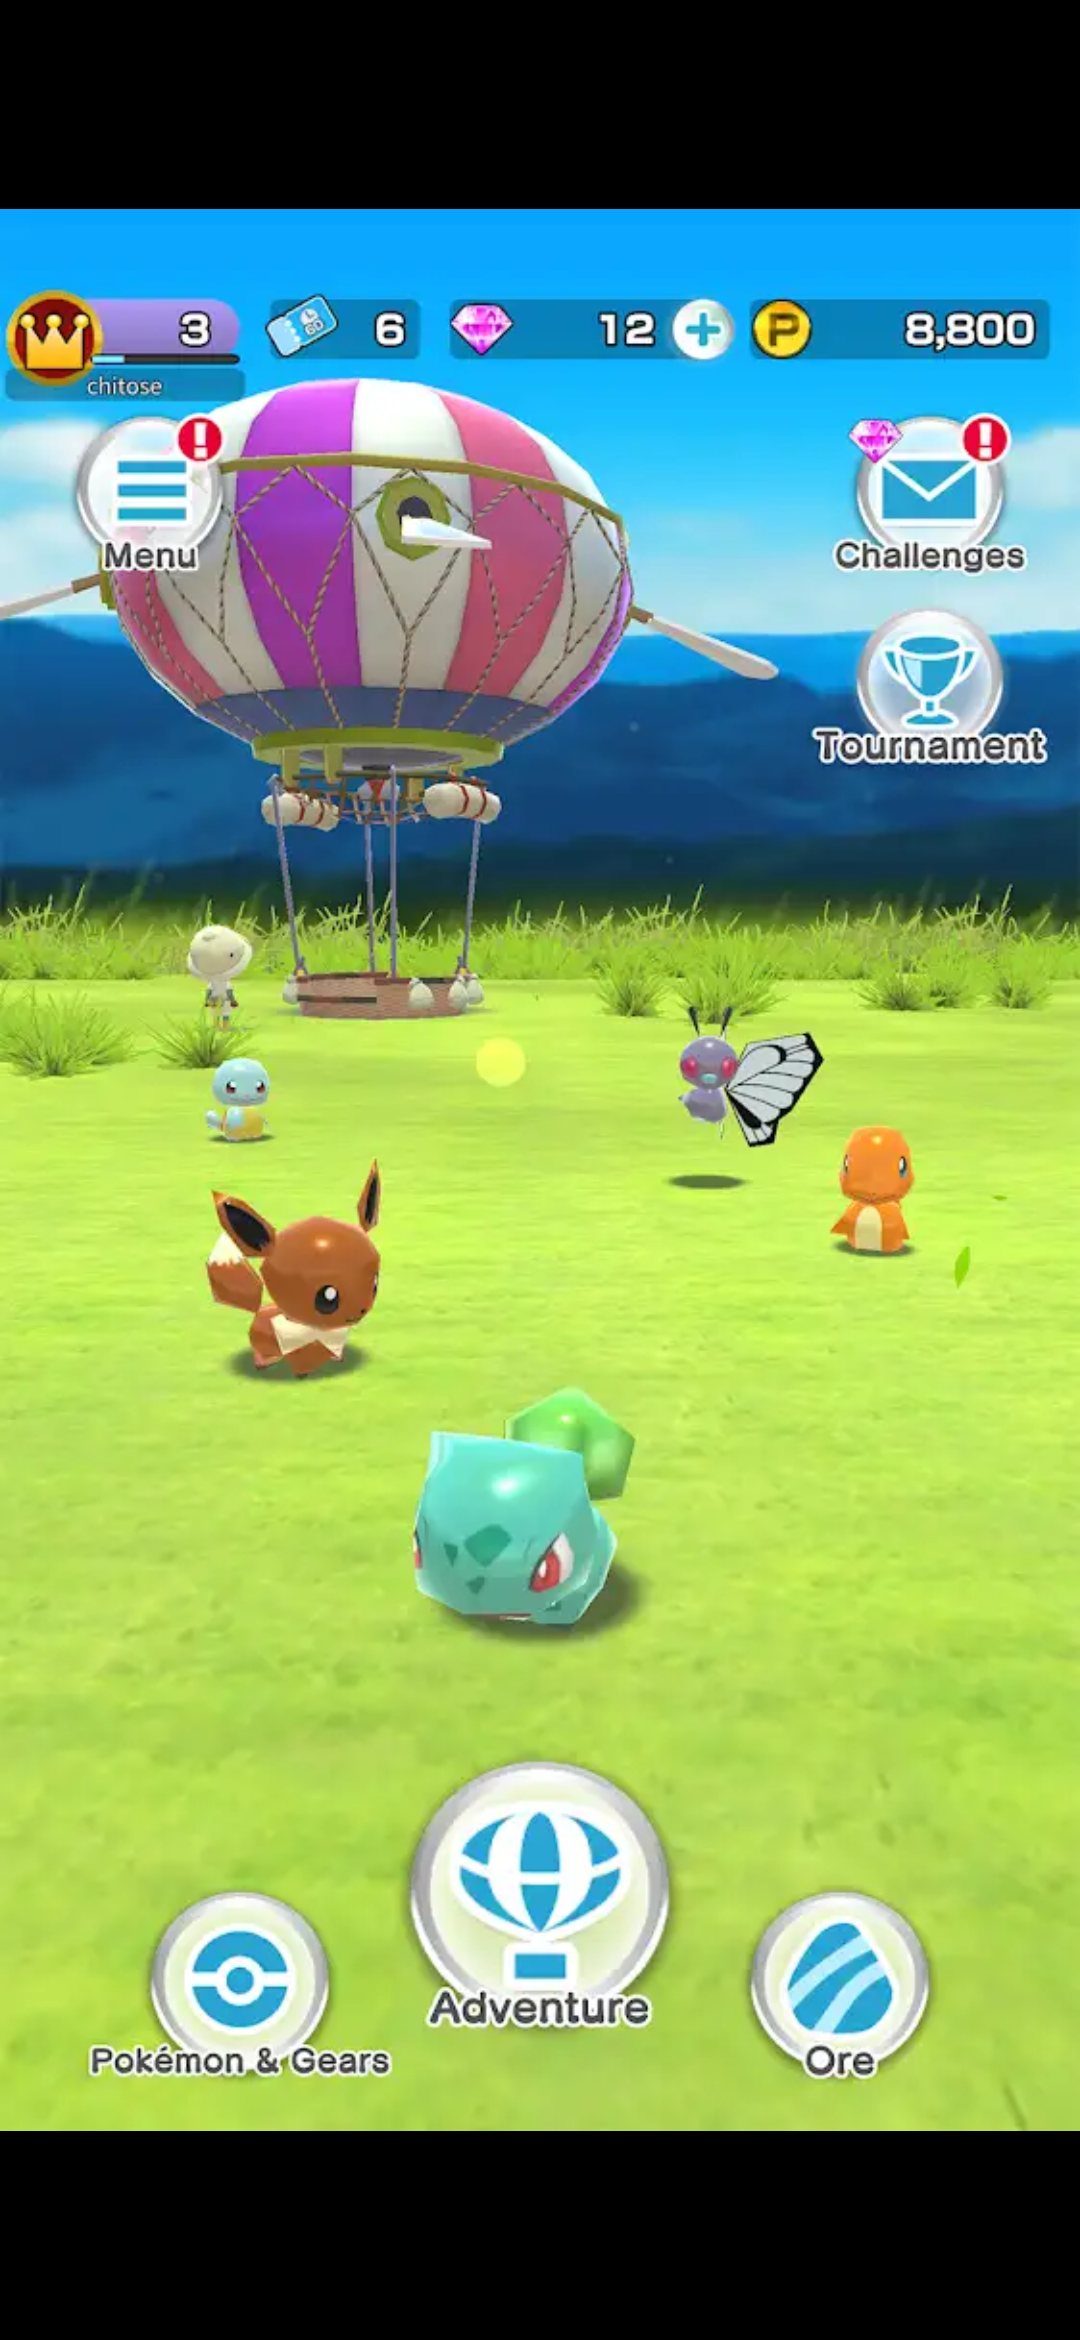 2019 New Pokemon Android Game. Games like pokemon, New